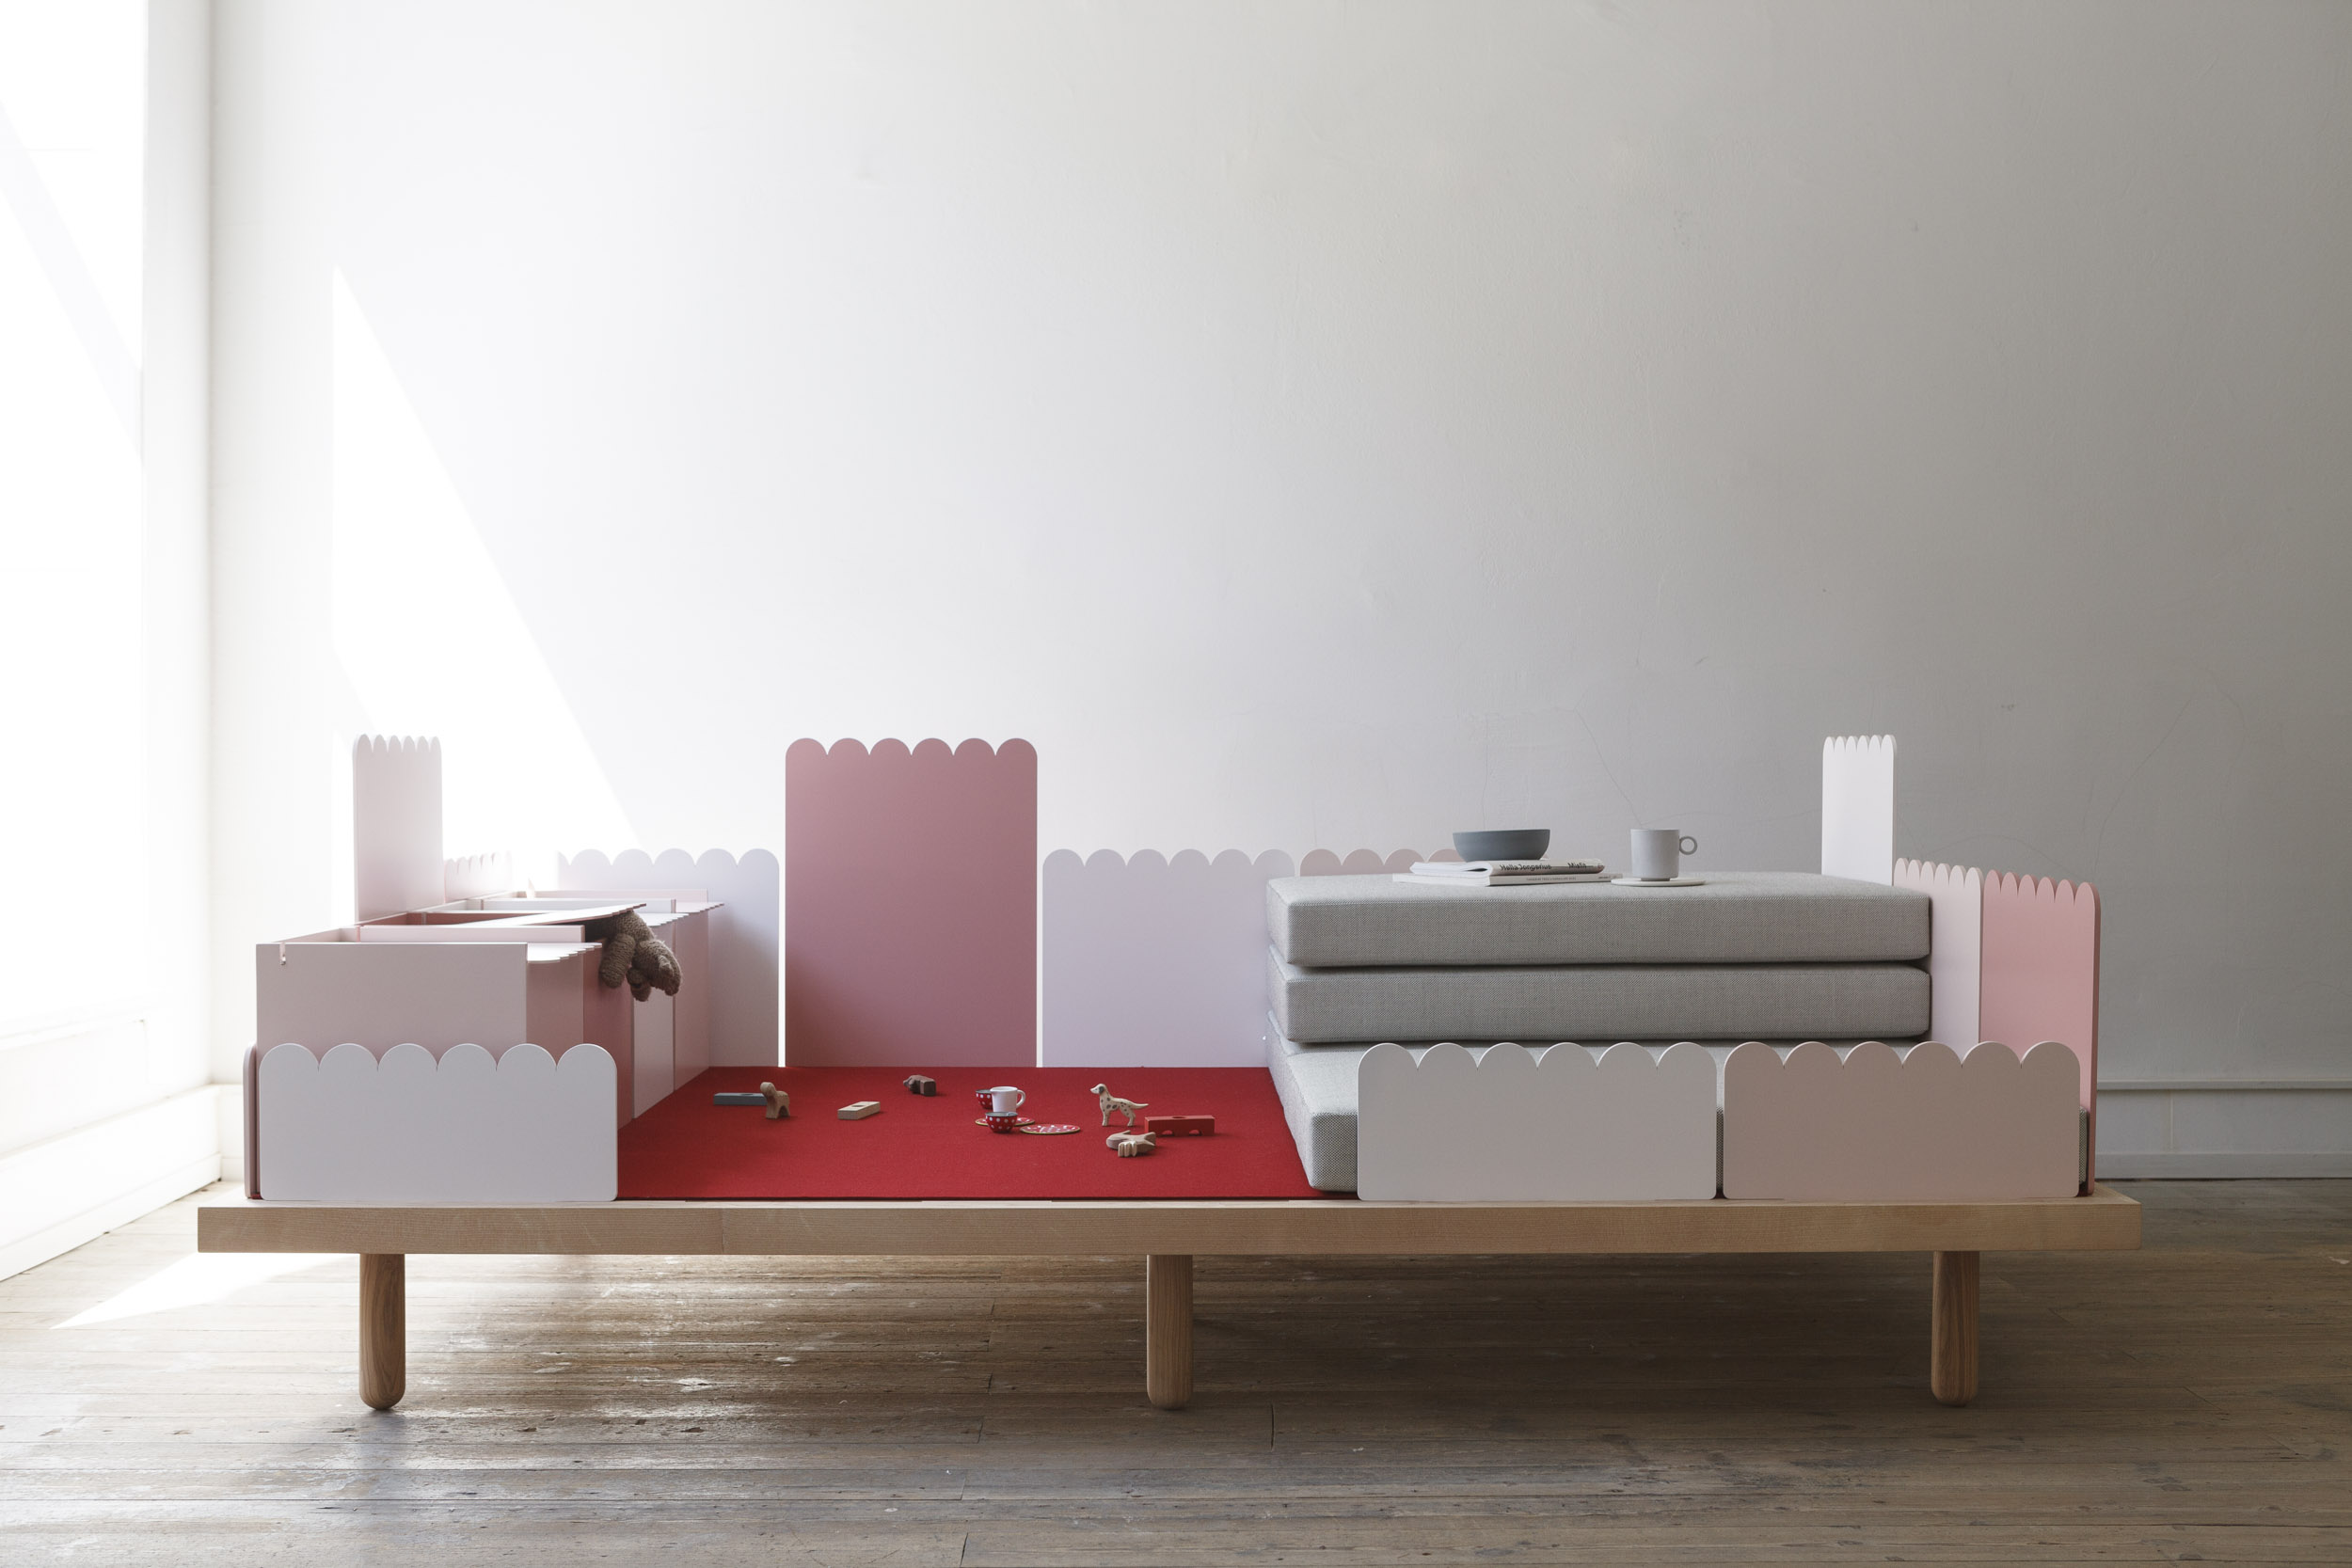 DIVANO PER LA FAMIGLIA  Multifunctional sofa for children and adults    ASH WOOD, LACQUERED ALUMINIUM, KVADRAT BASEL TEXTILE, RED MERINO WOOL FELT  245 x 150 x 30cm ( Height over all 100cm )  stackable back parts and lower legs ( 15cm ) for a babies playground